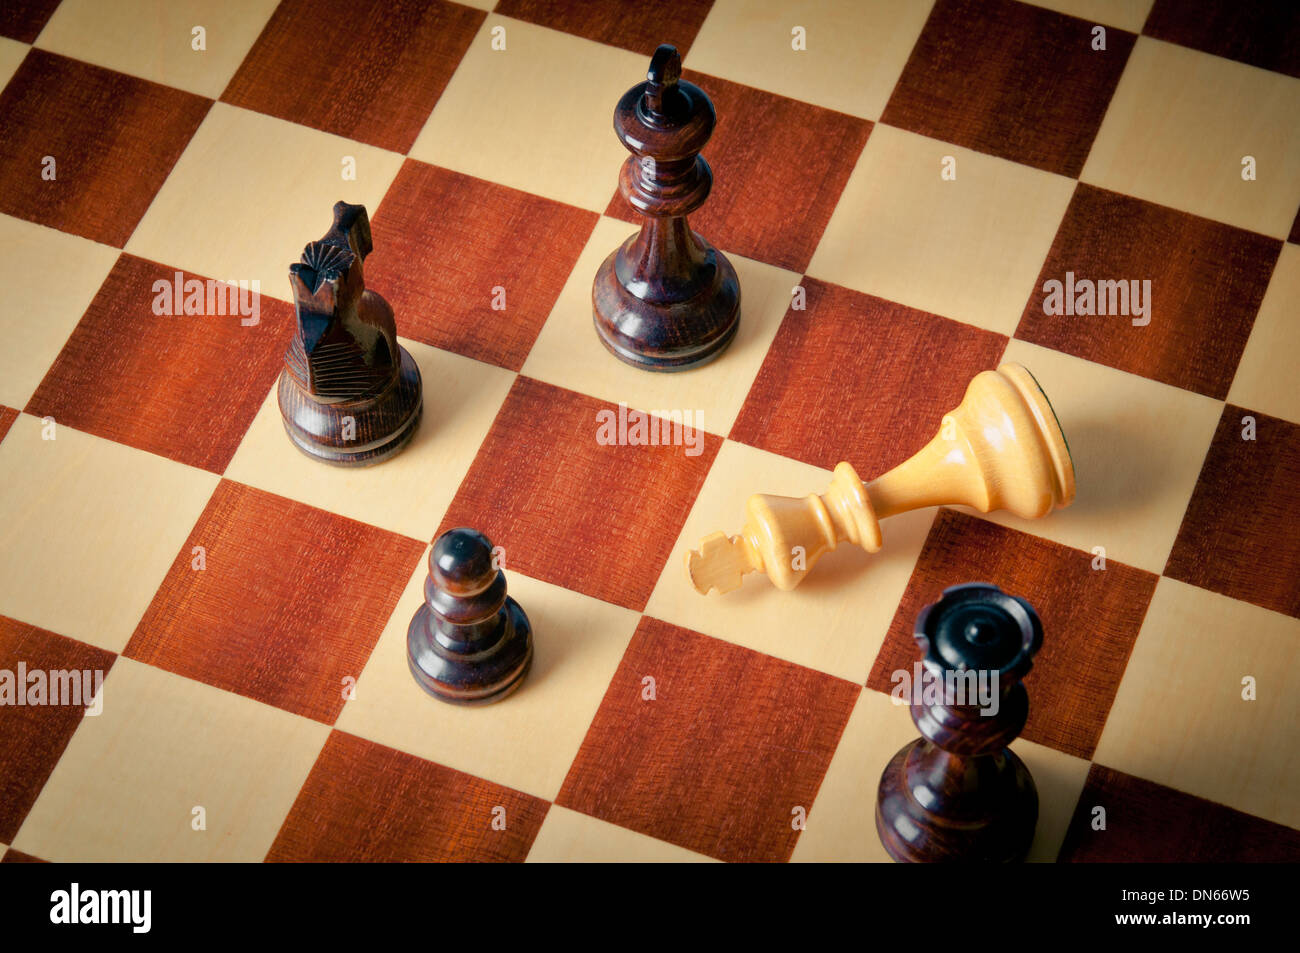 checkmate concept, with white king defeated and surrounded by black pieces - Stock Image